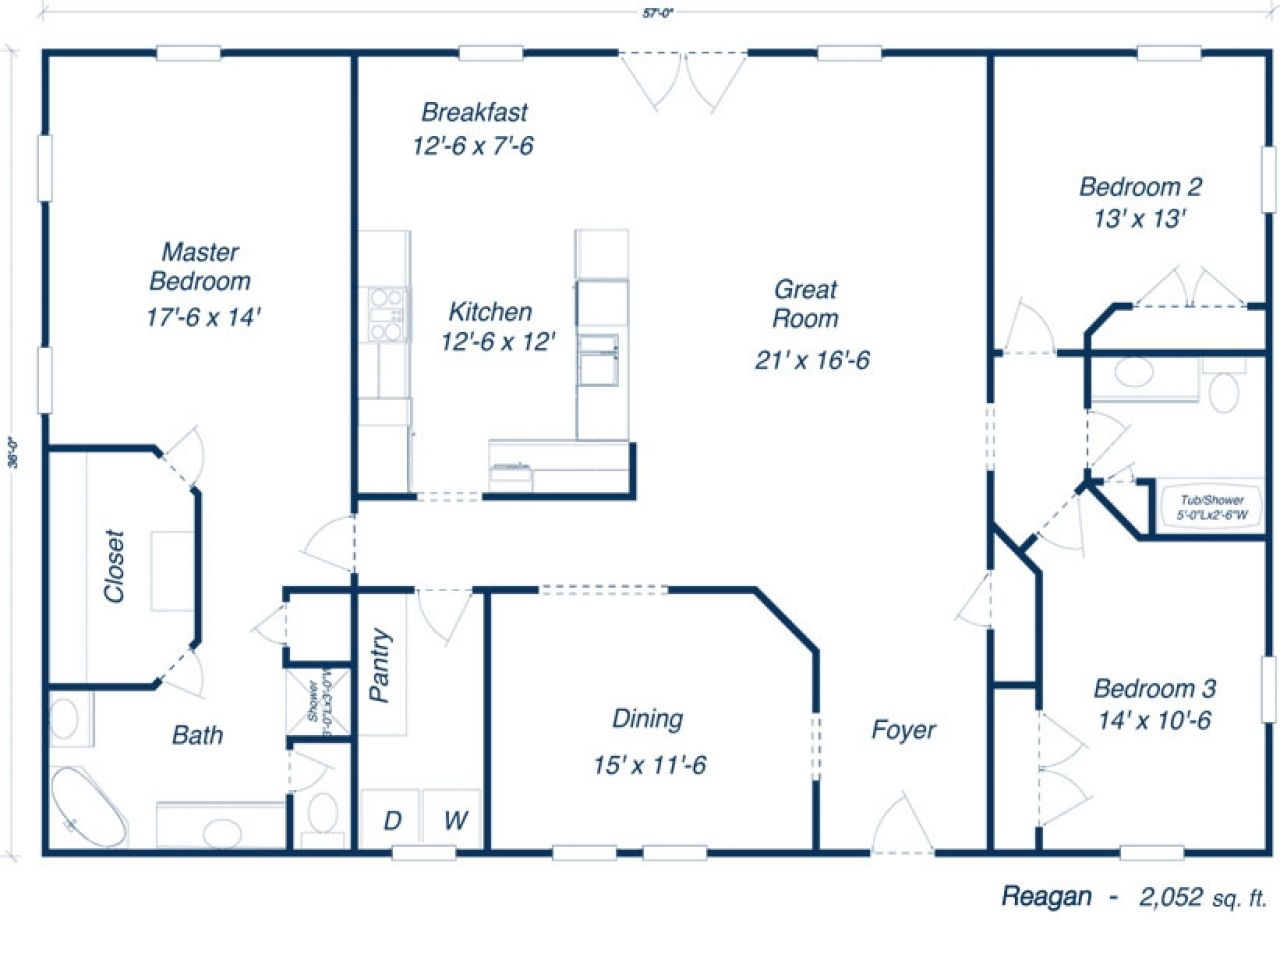 Plans furthermore 30 x 50 house floor plans besides for Construction house plans